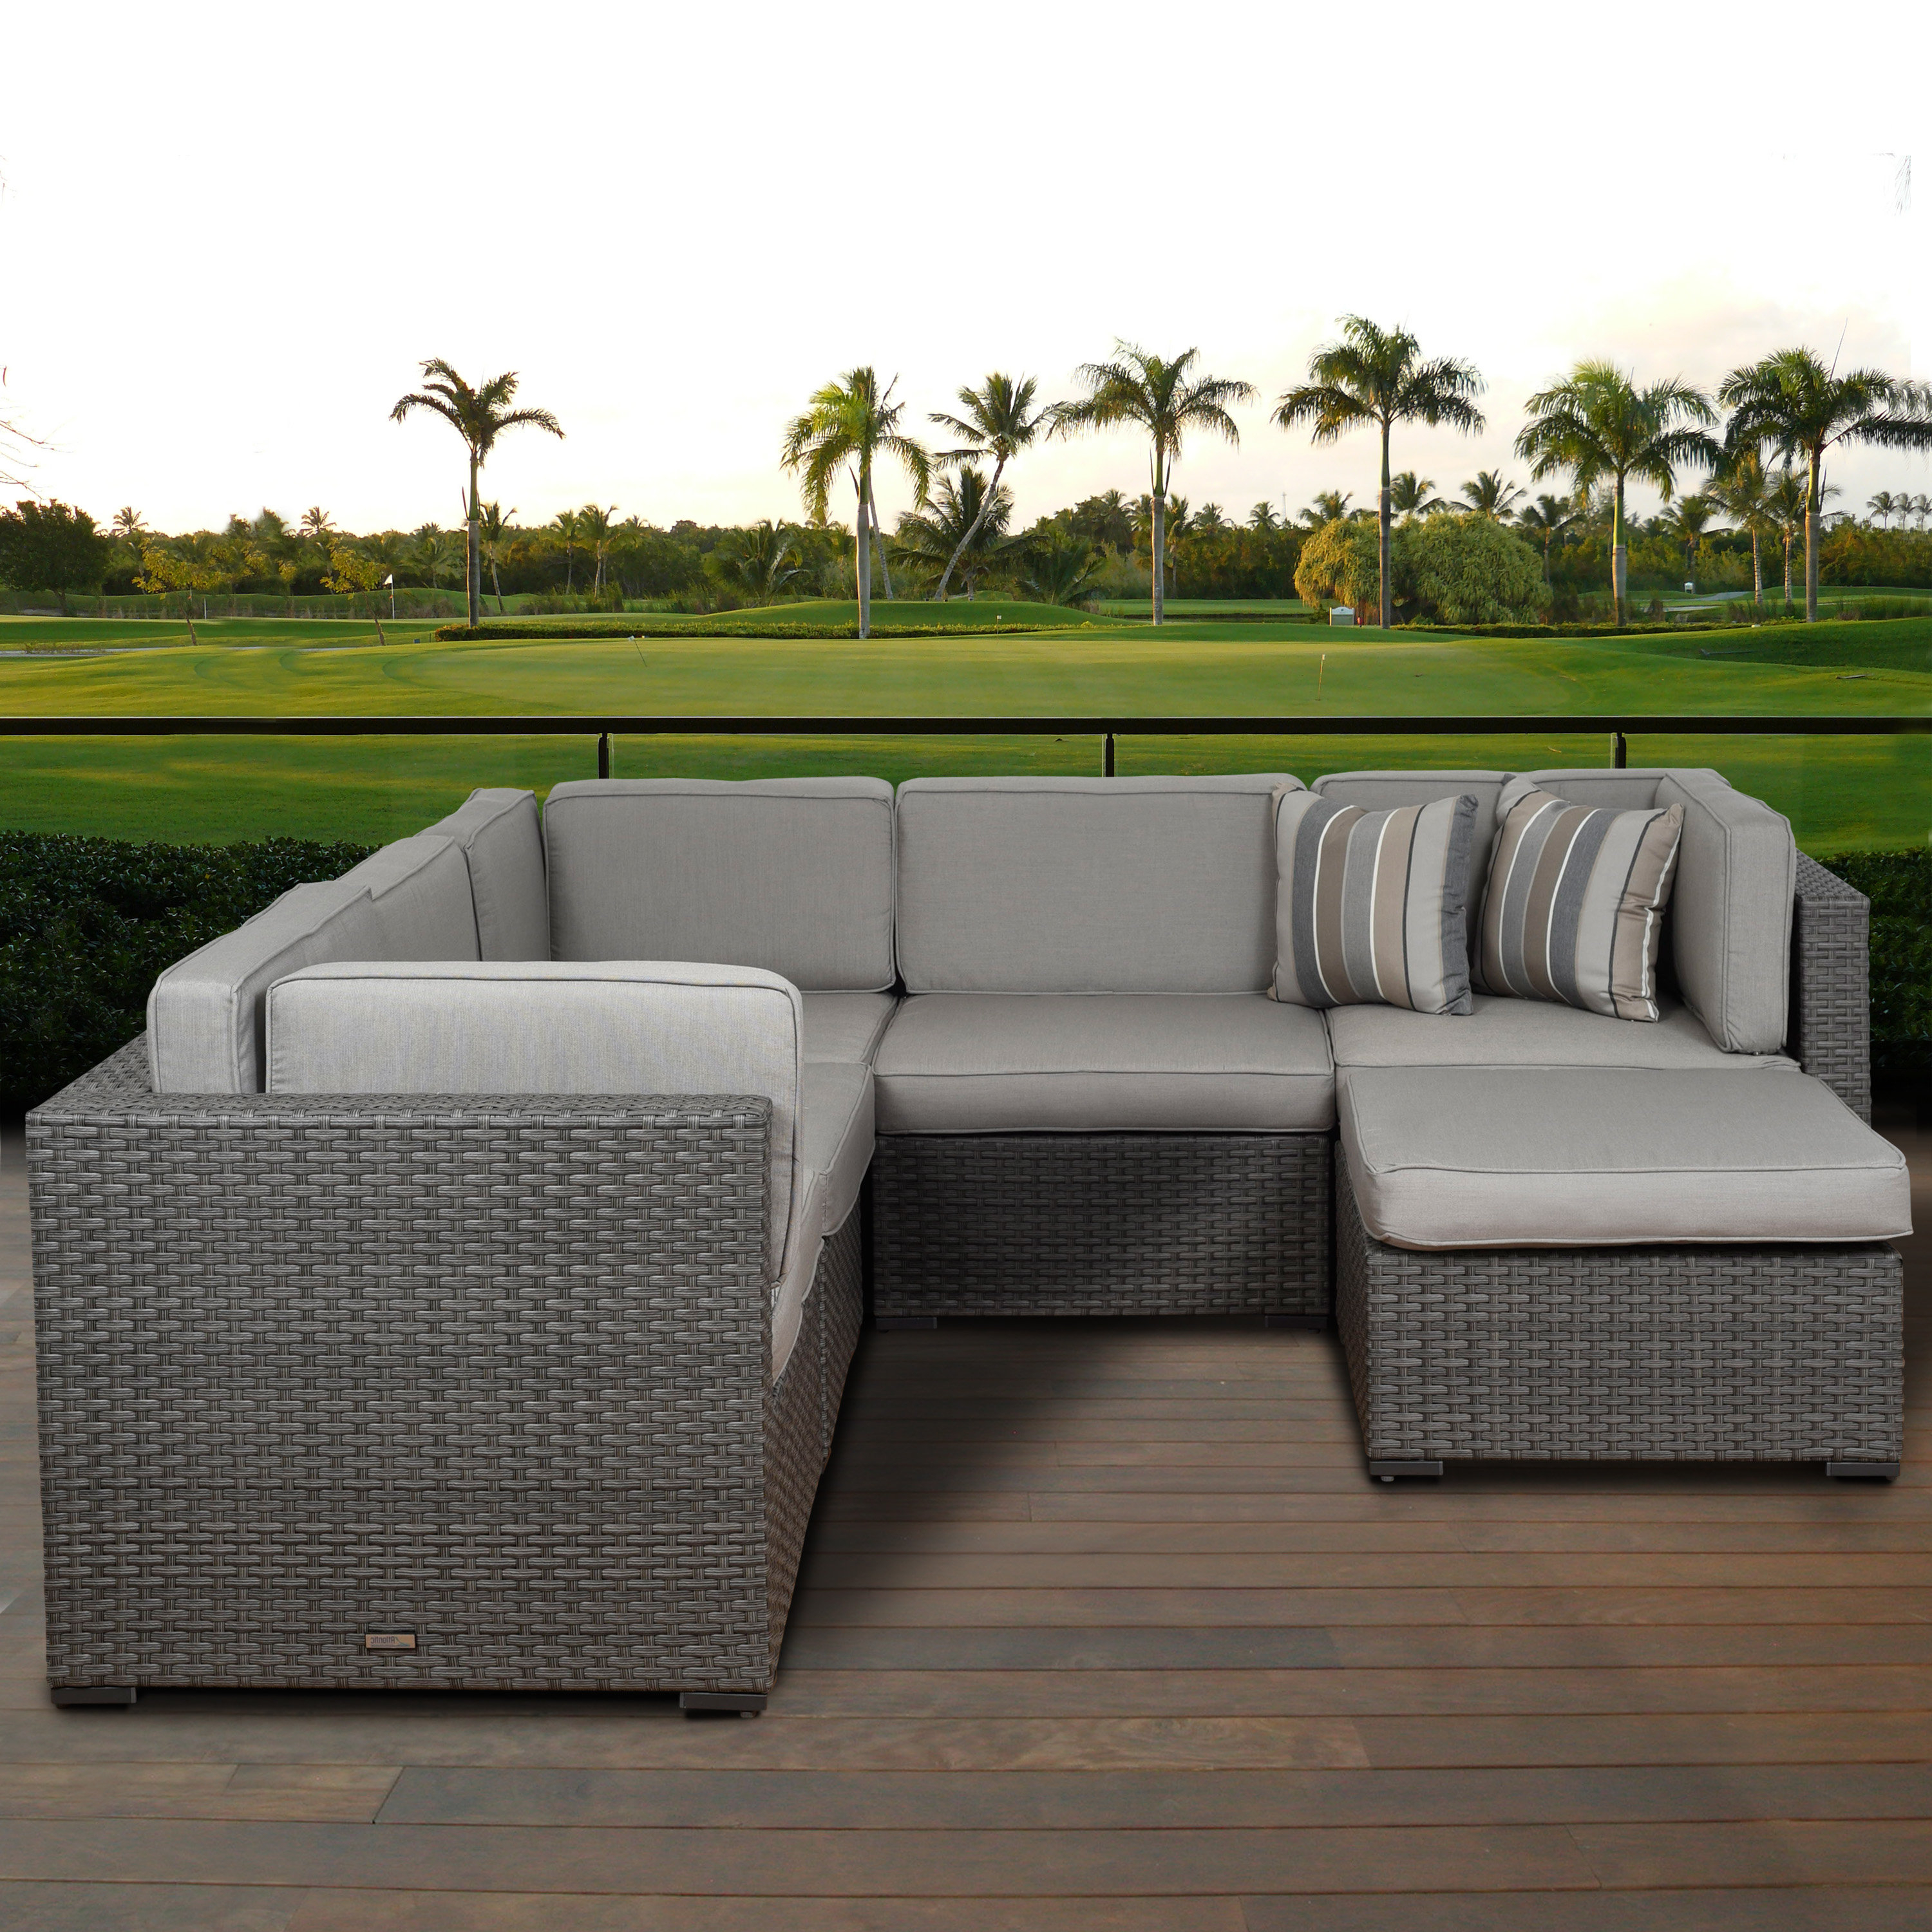 Lorentzen 6 Piece Sectional Seating Group With Cushions In Well Liked Lorentzen Patio Sectionals With Cushions (View 4 of 20)